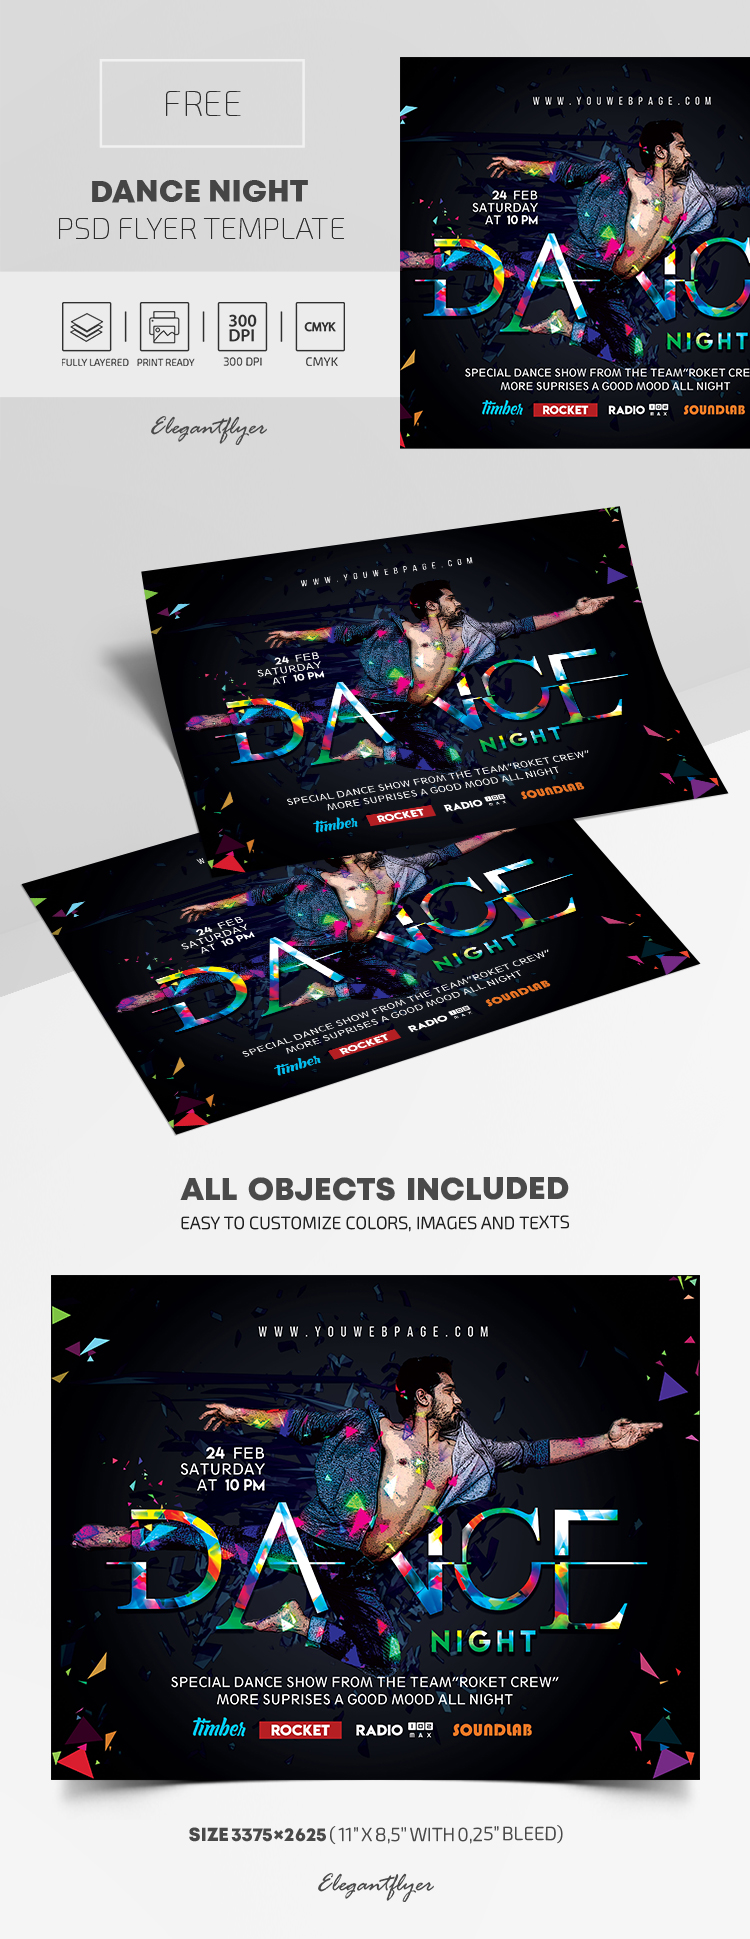 Dance Night – Free PSD Flyer Template